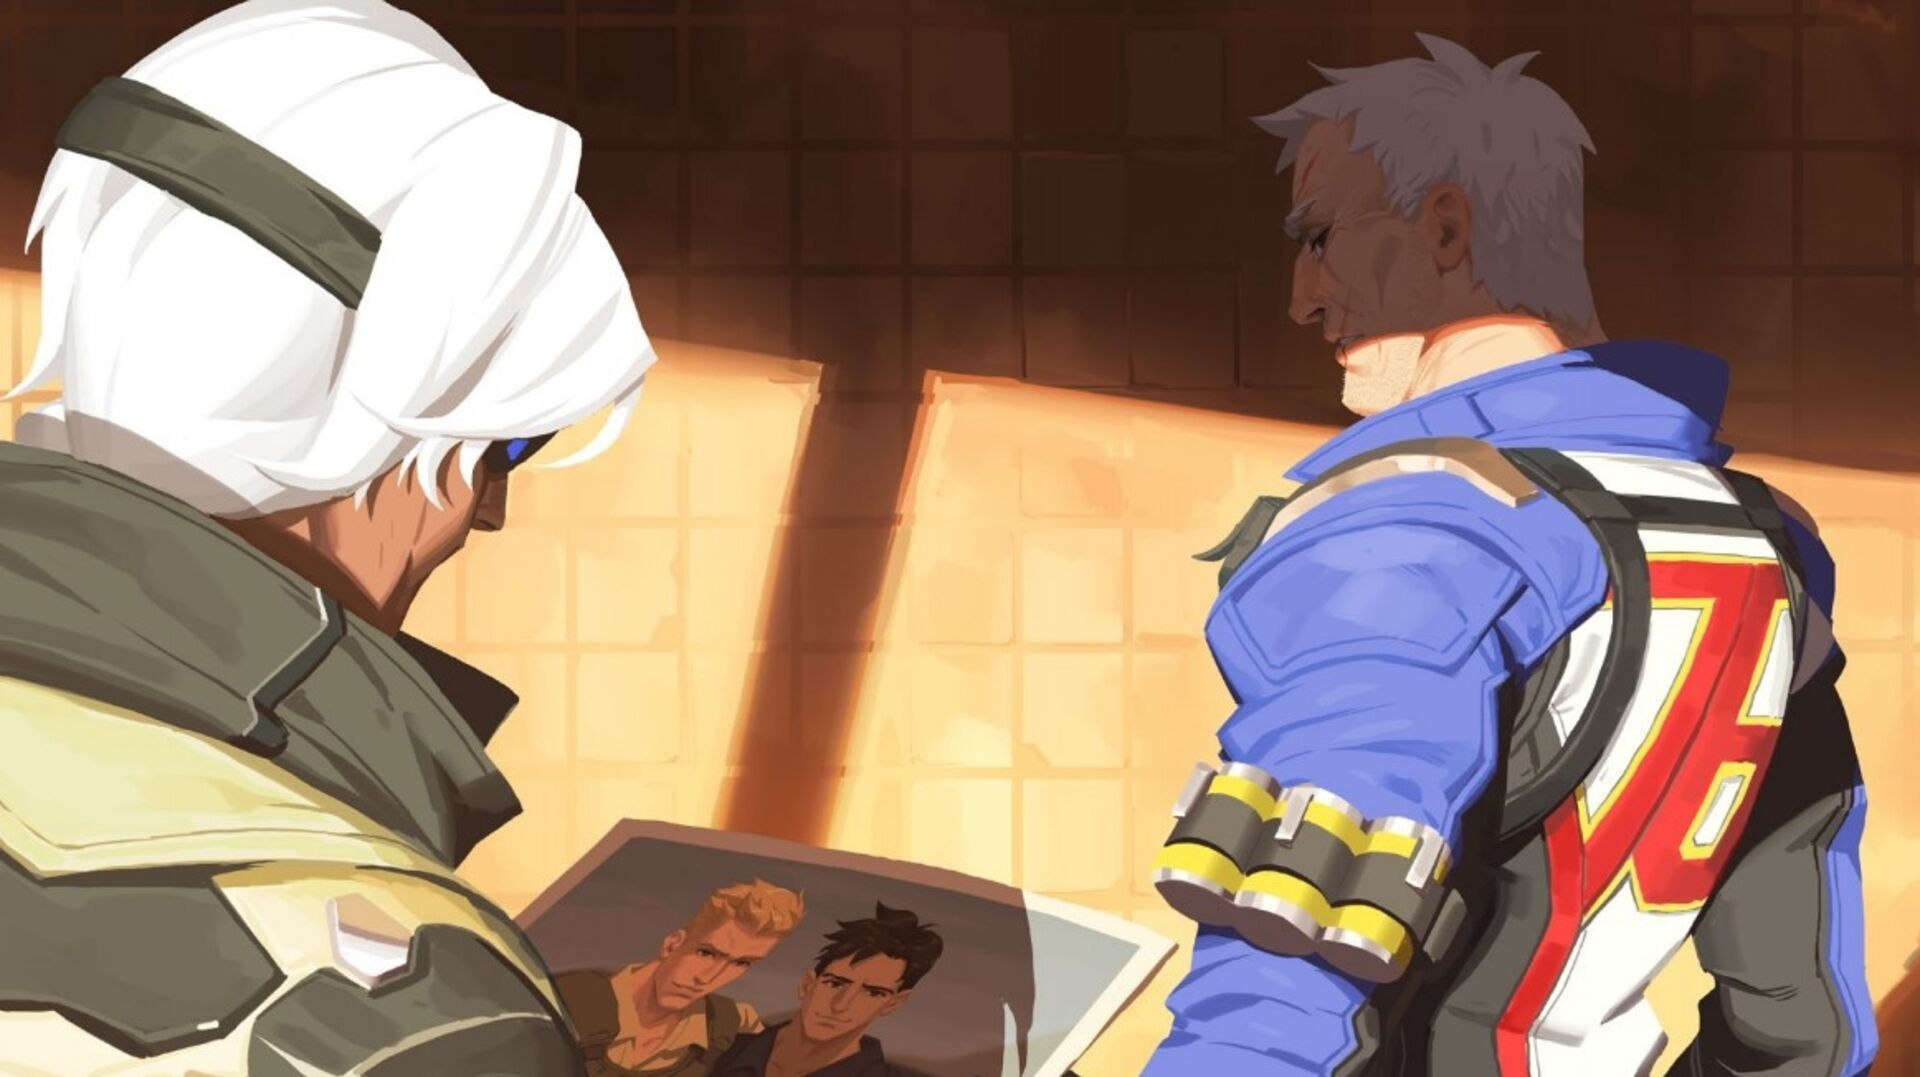 Another central Overwatch character has an LGBT backstory